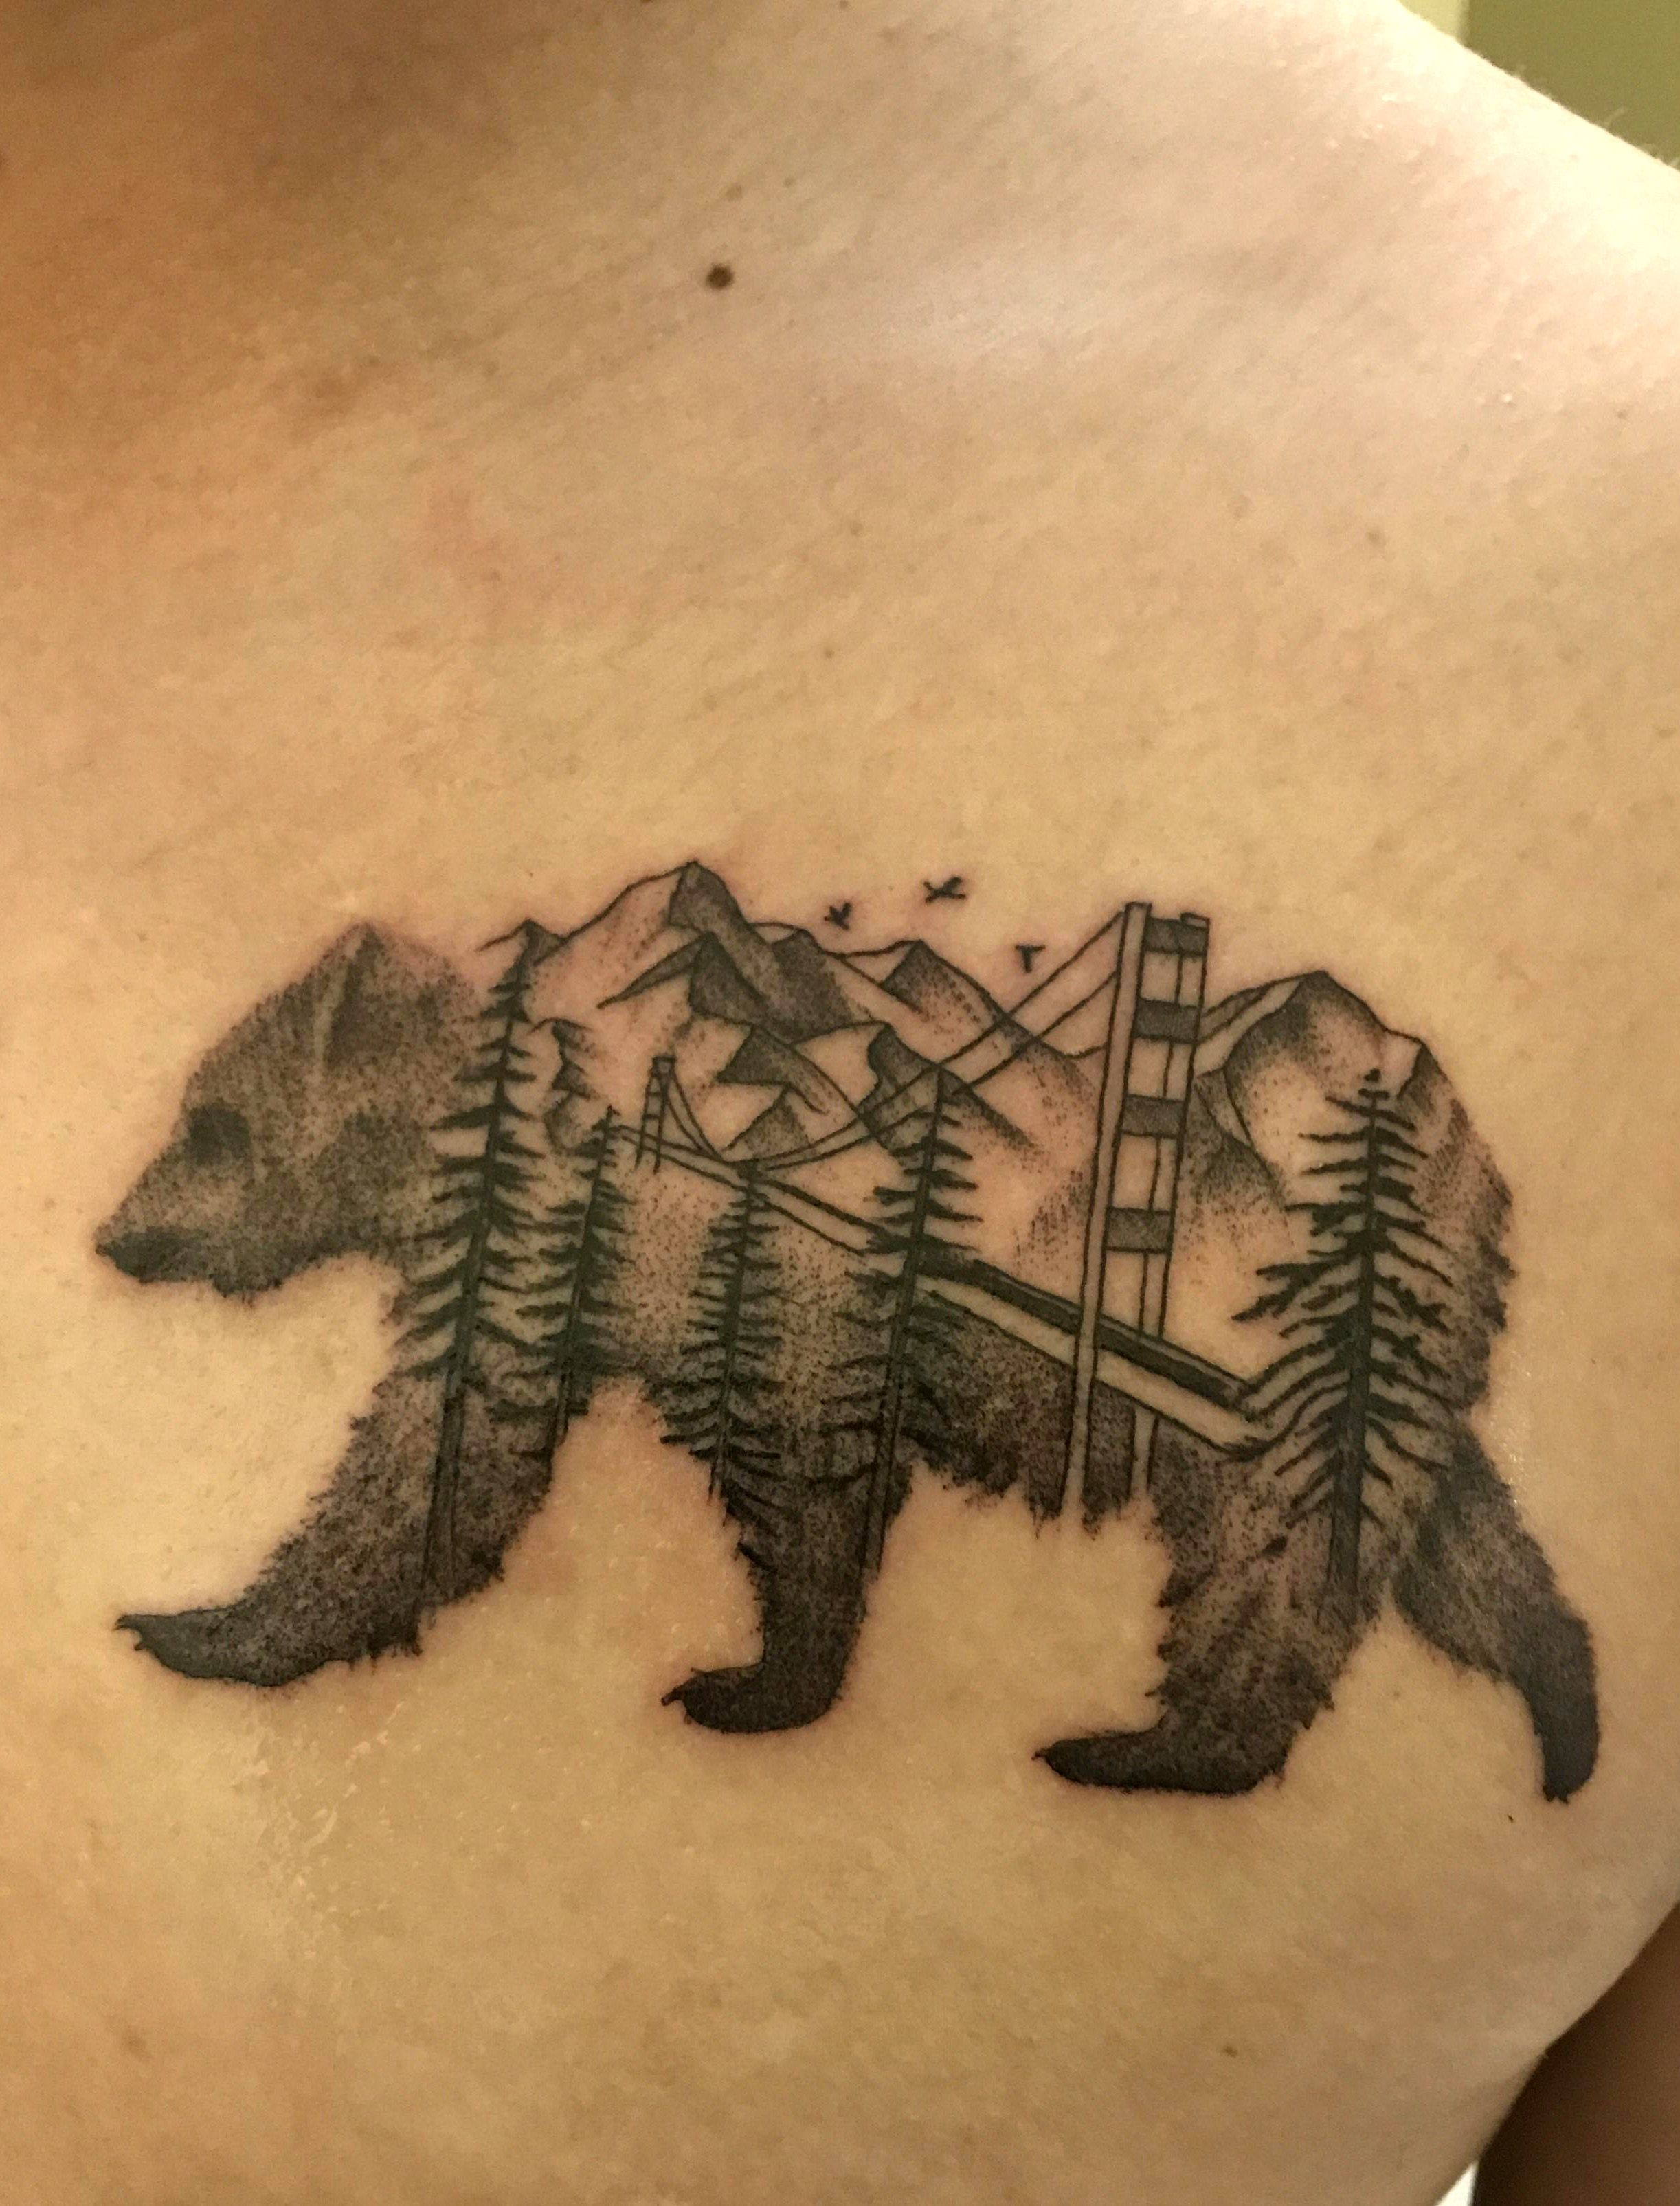 California bear tattoo done by Colton at Chapter One Tattoo in San Diego - Imageix